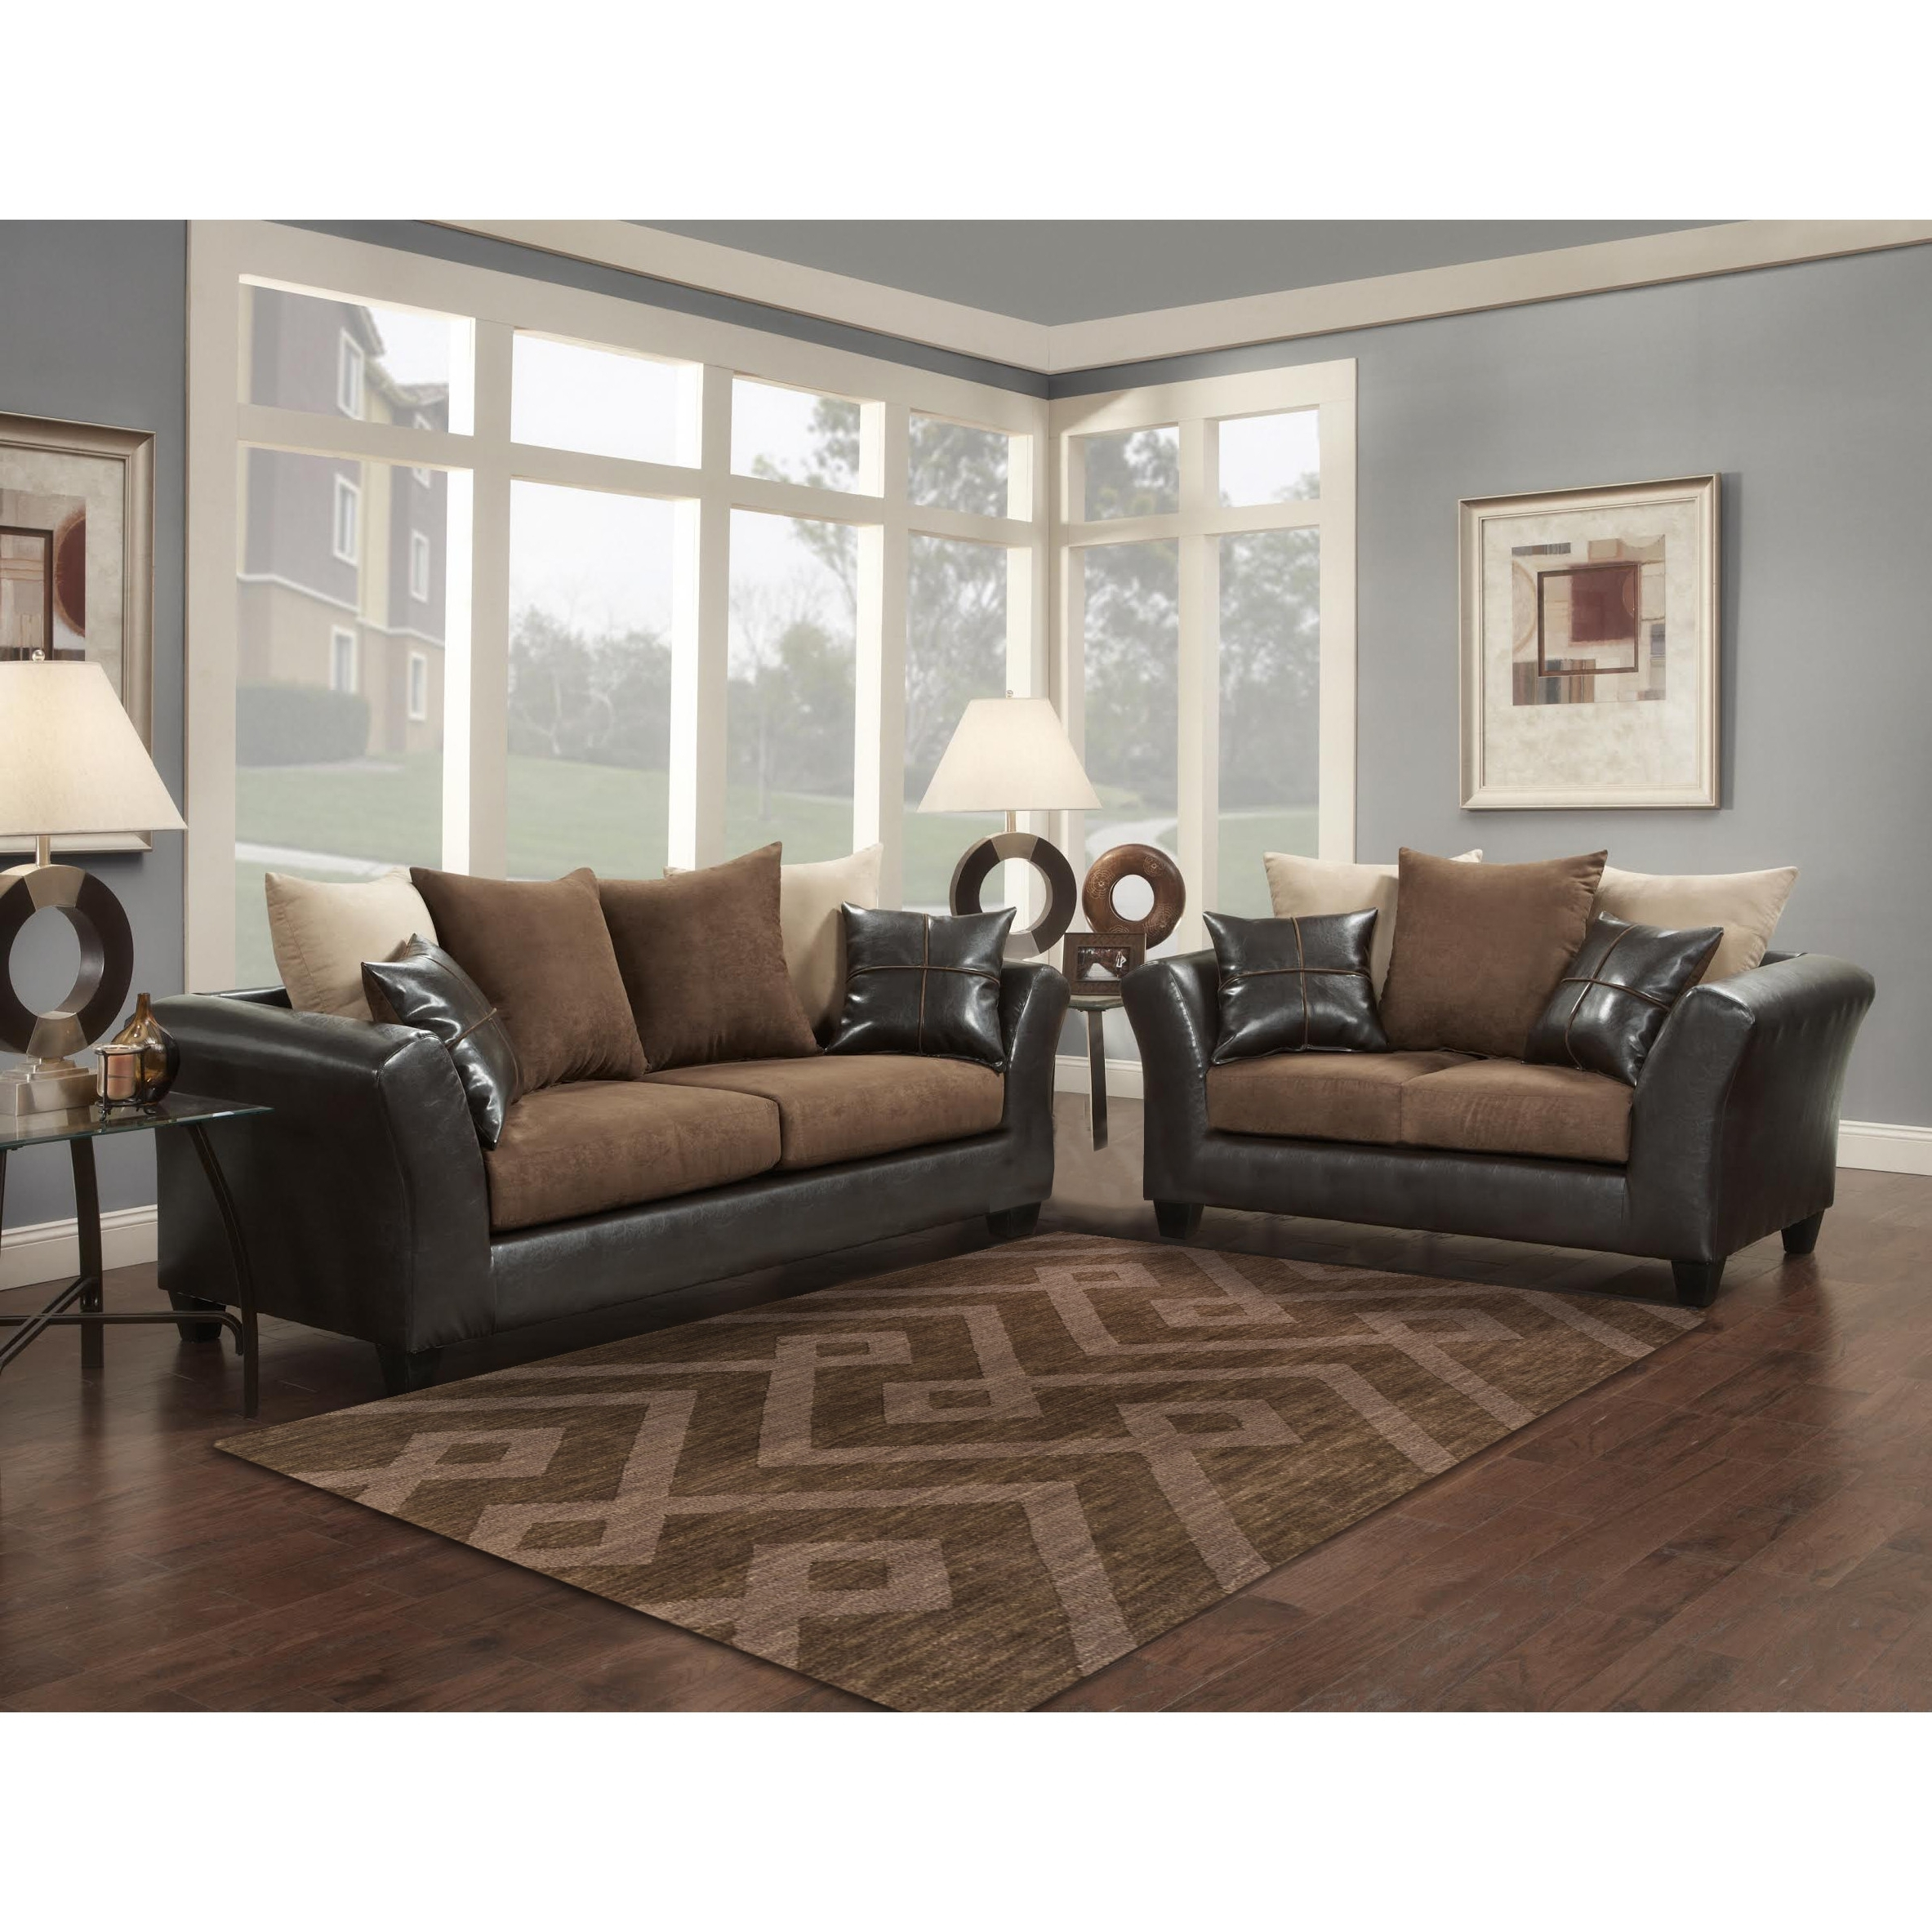 Braxton Sectional Sofas Pertaining To Widely Used Sofa : Braxton Sectional Sofa Interior Design For Home Remodeling (View 18 of 20)